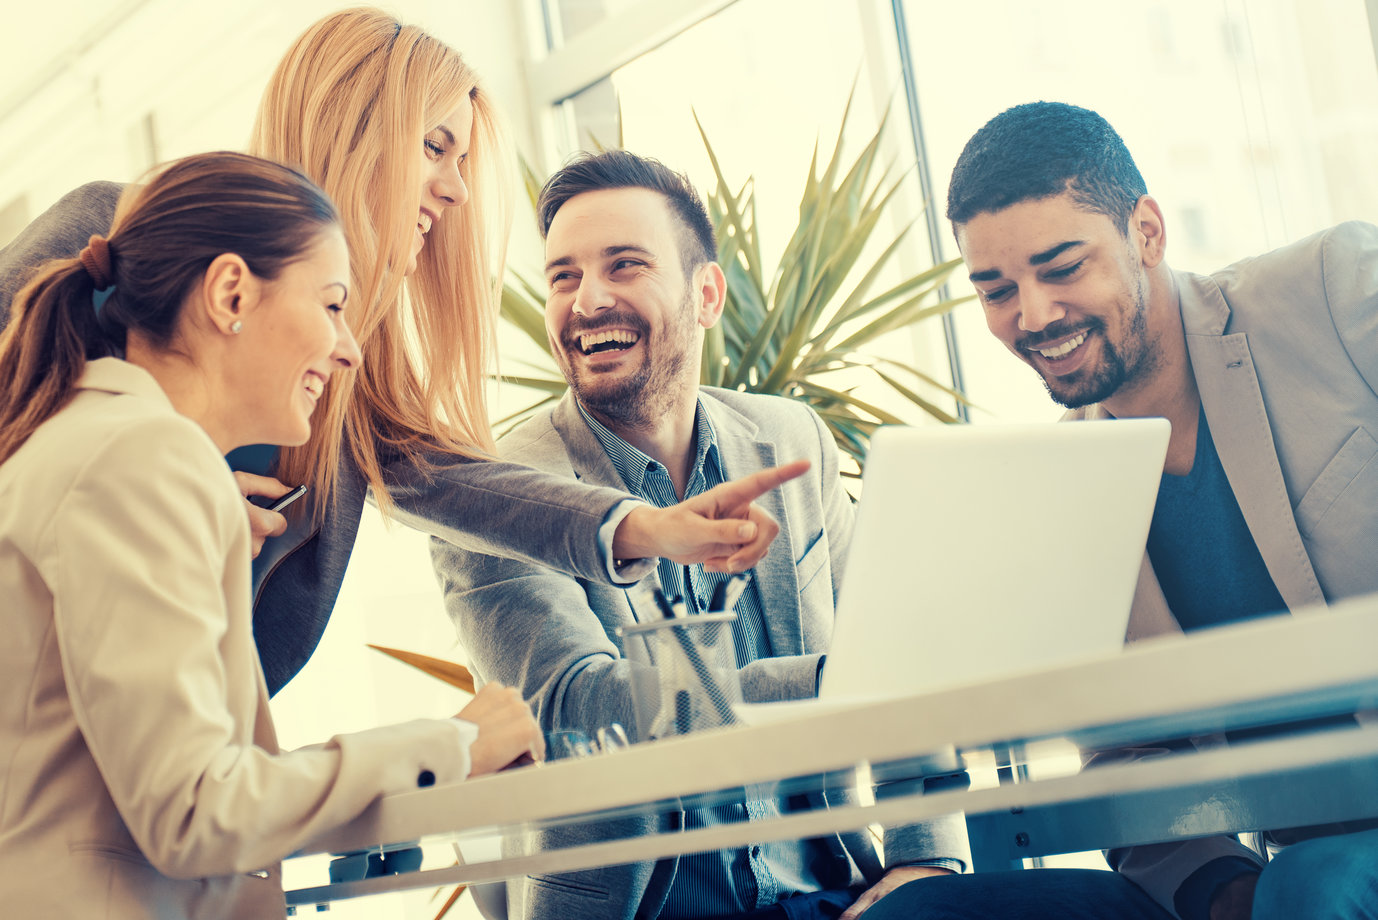 Work colleagues laughing and looking at laptop